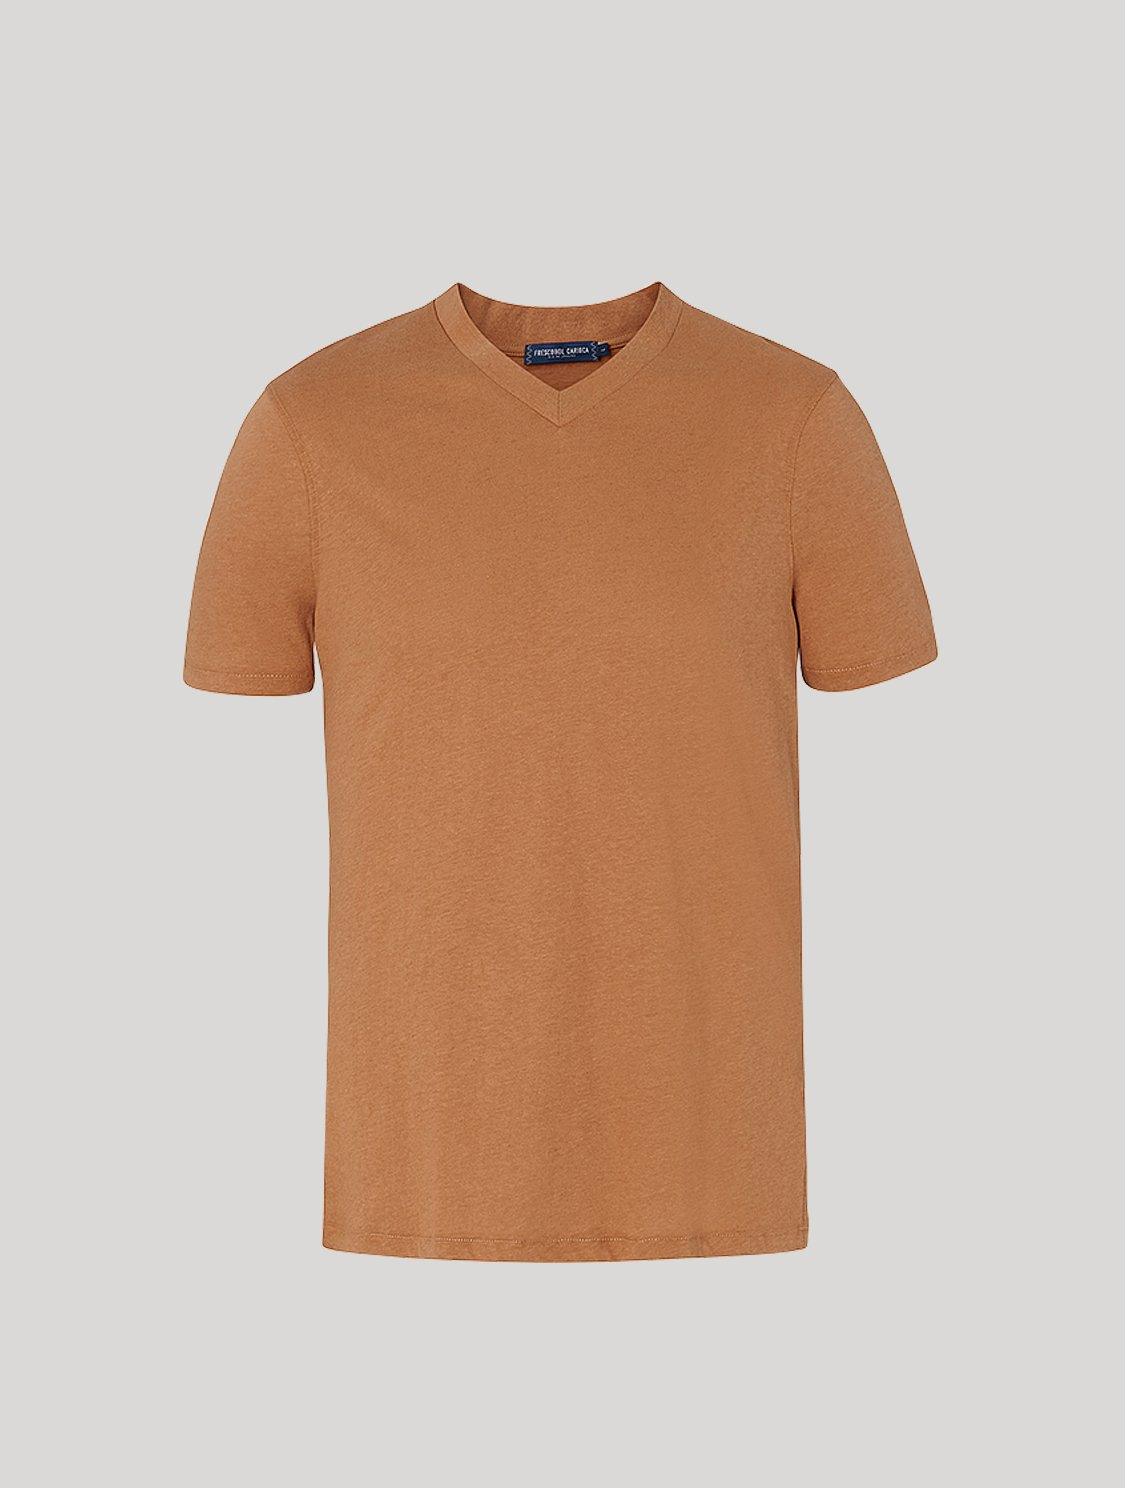 Victor T-Shirt Faded Chestnut M